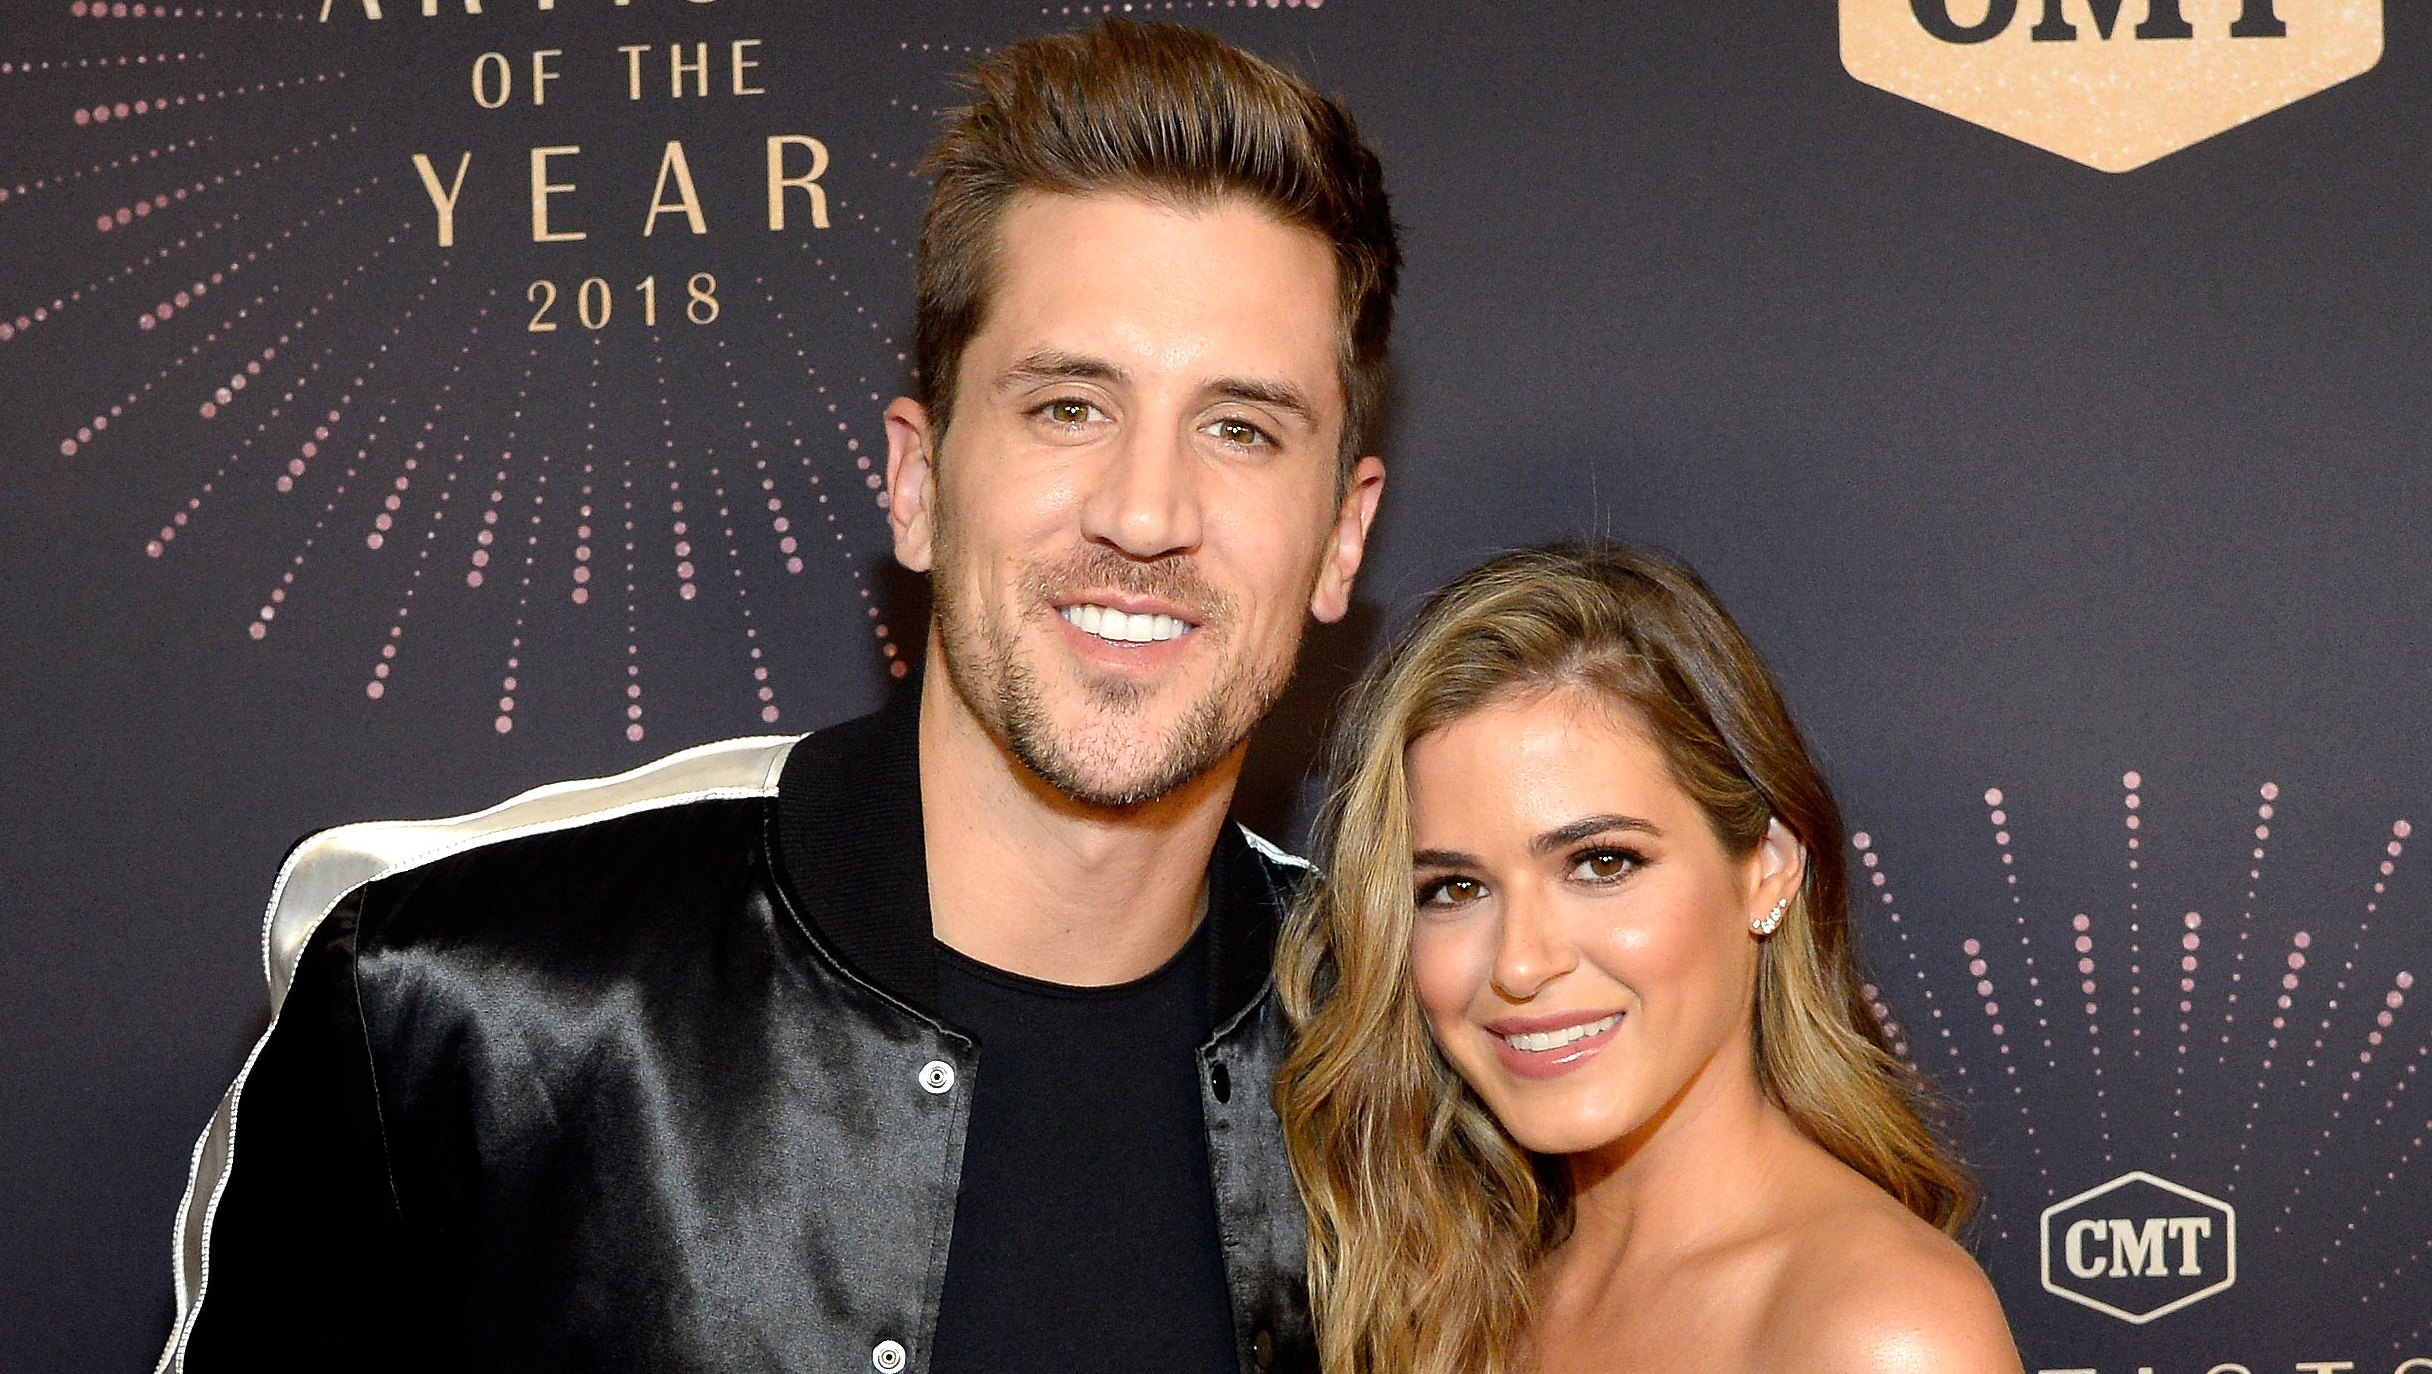 Jordan Rodgers Tells Joelle Fletcher 'We Are Up Next' As They Attend His Brother's Wedding